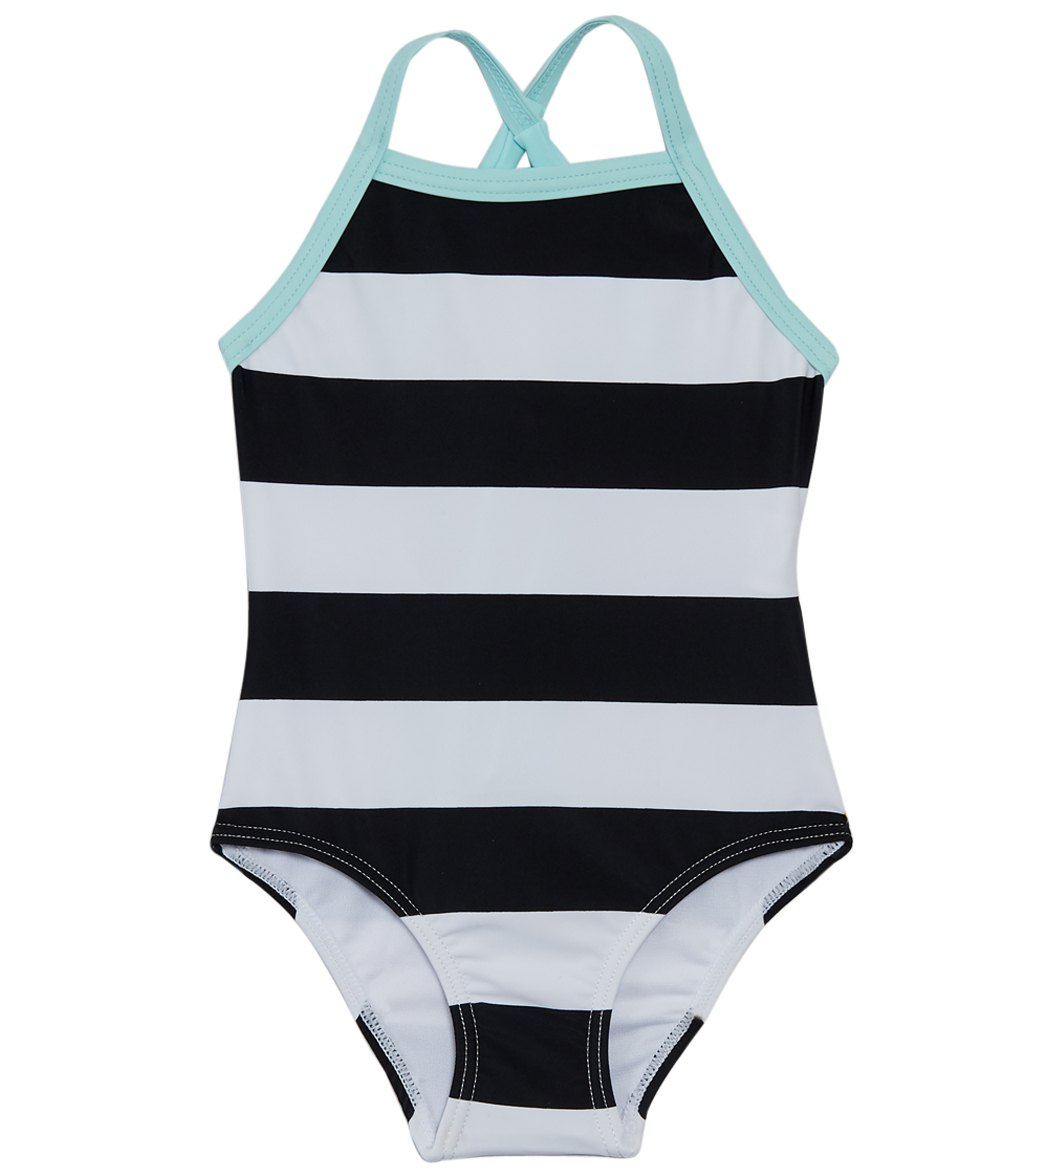 7dccb3ed9ab7 Snapper Rock Girls  Cross Tie One Piece Swimsuit (Toddler